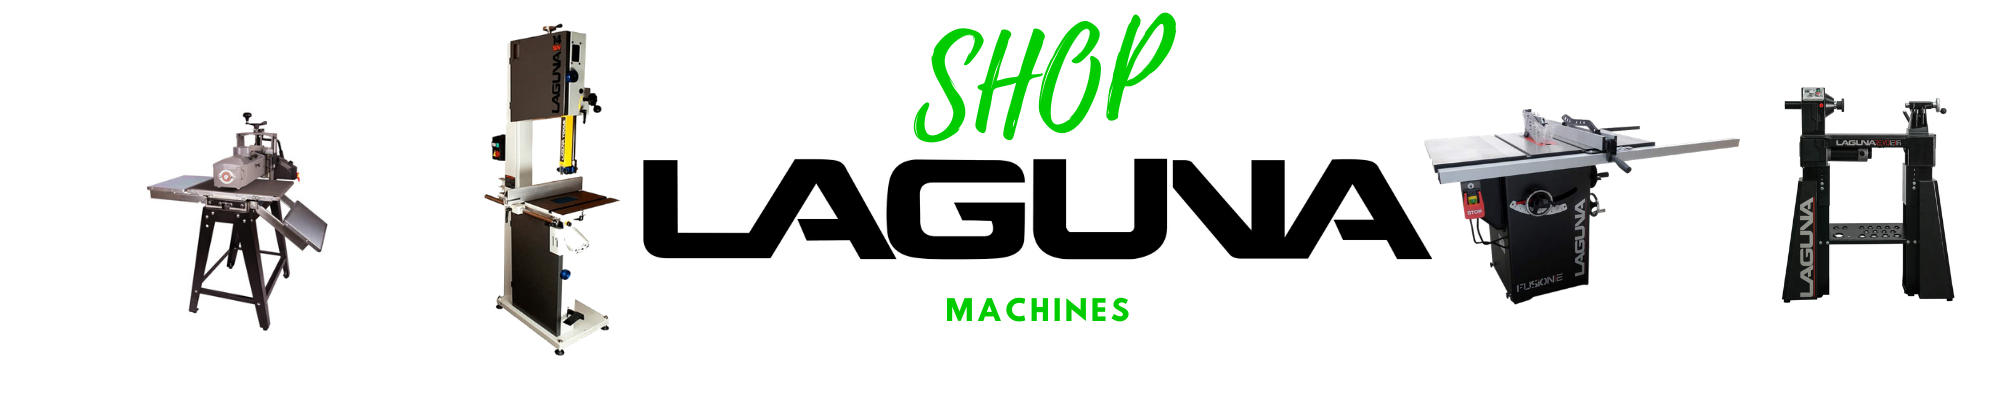 Shop Laguna tools